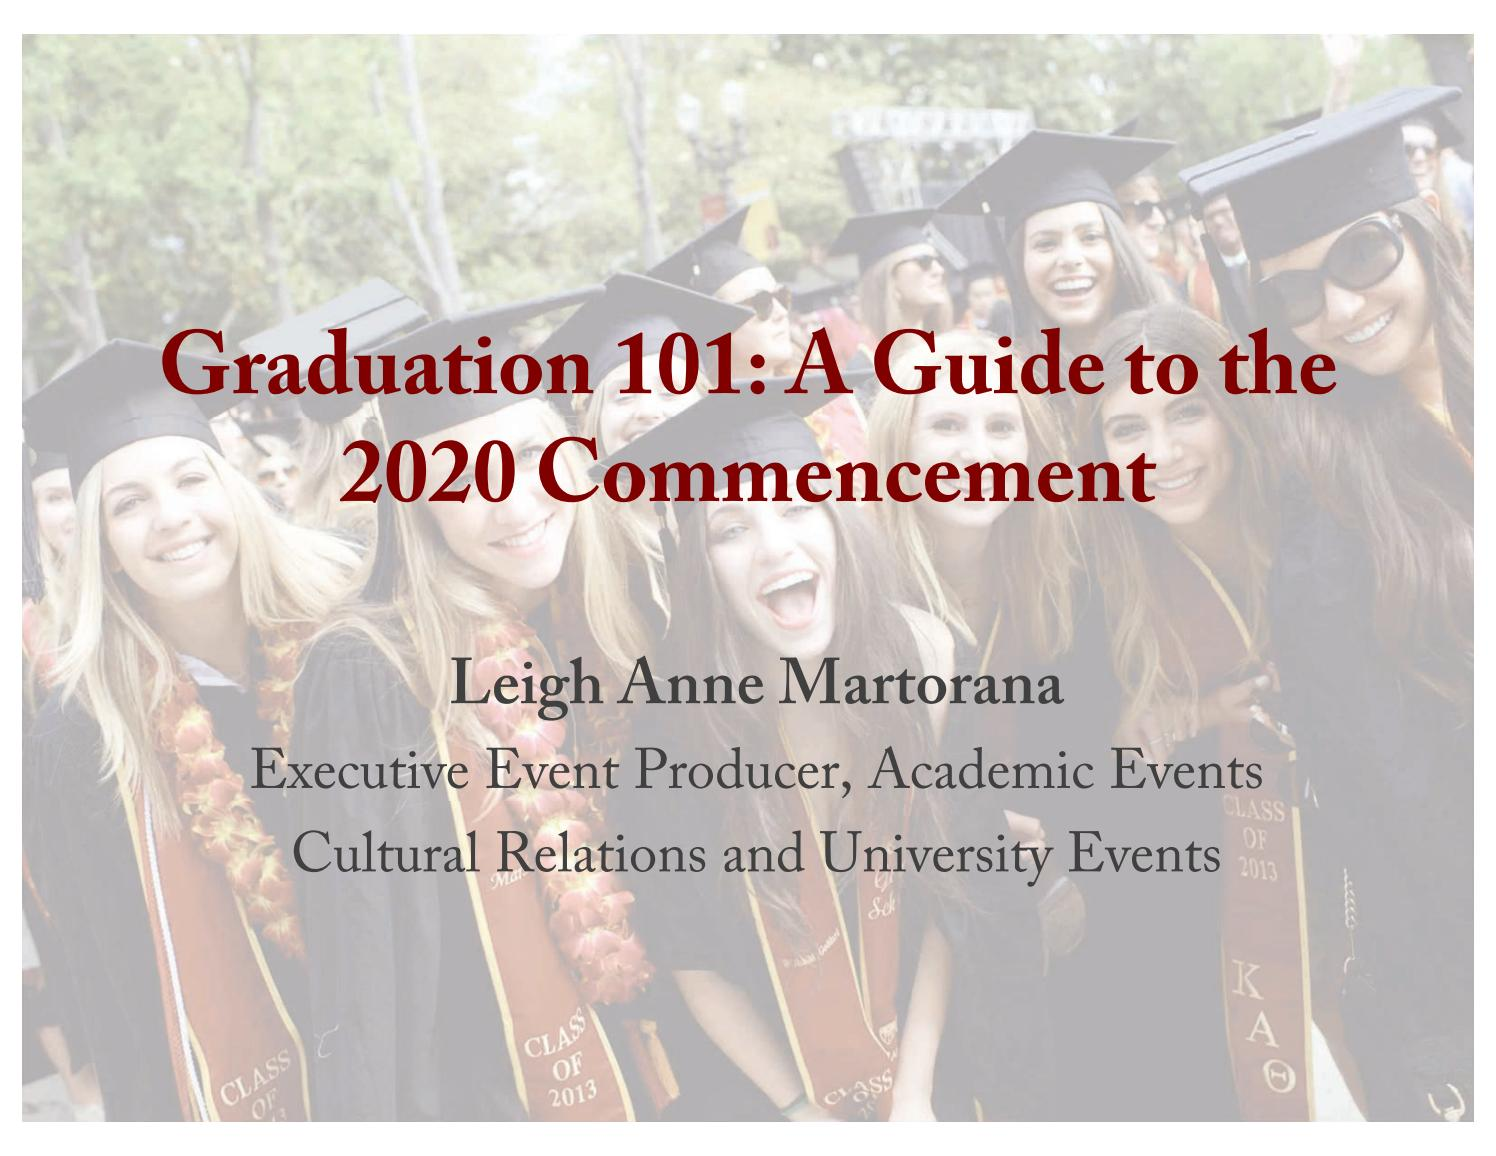 Usc Graduation Speaker 2020.Graduation 101 A Guide To Usc S 2020 Commencement By